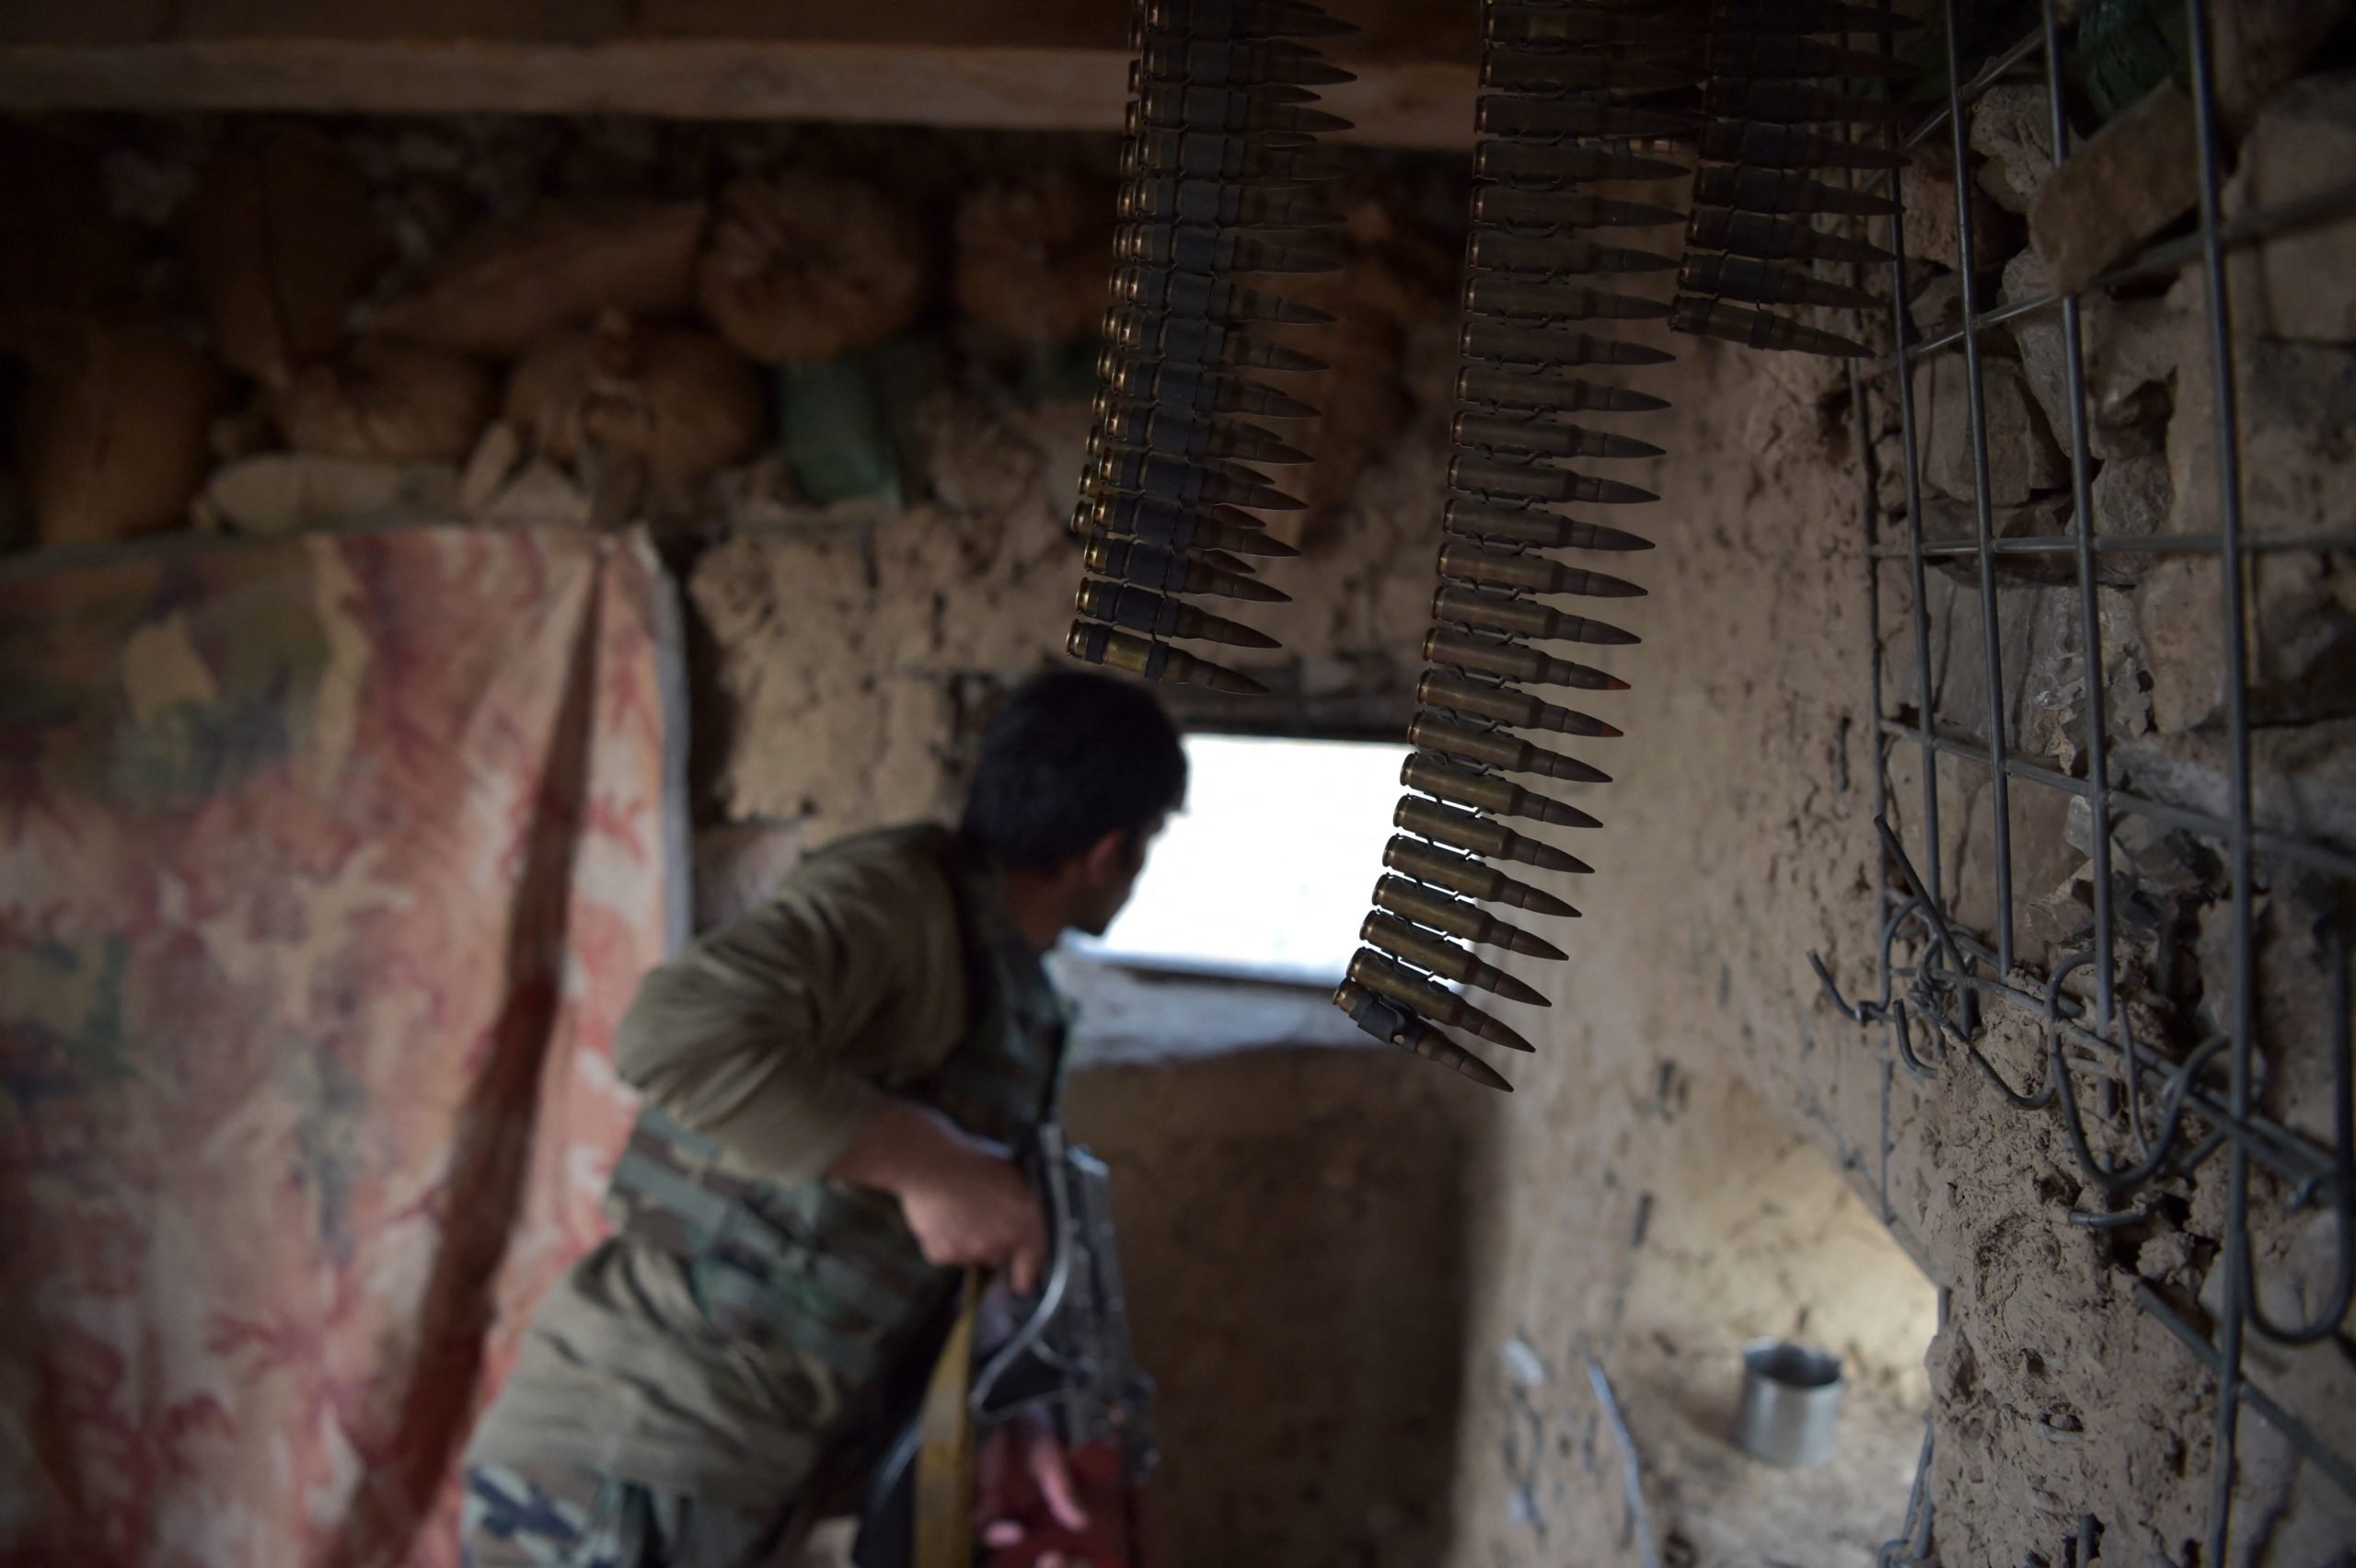 In this photograph taken on March 23, 2021, an Afghan National Army (ANA) soldier keeps watch at an outpost set up against Taliban fighters in Kajaki, northeast of Helmand Province.(Photo by WAKIL KOHSAR/AFP via Getty Images)